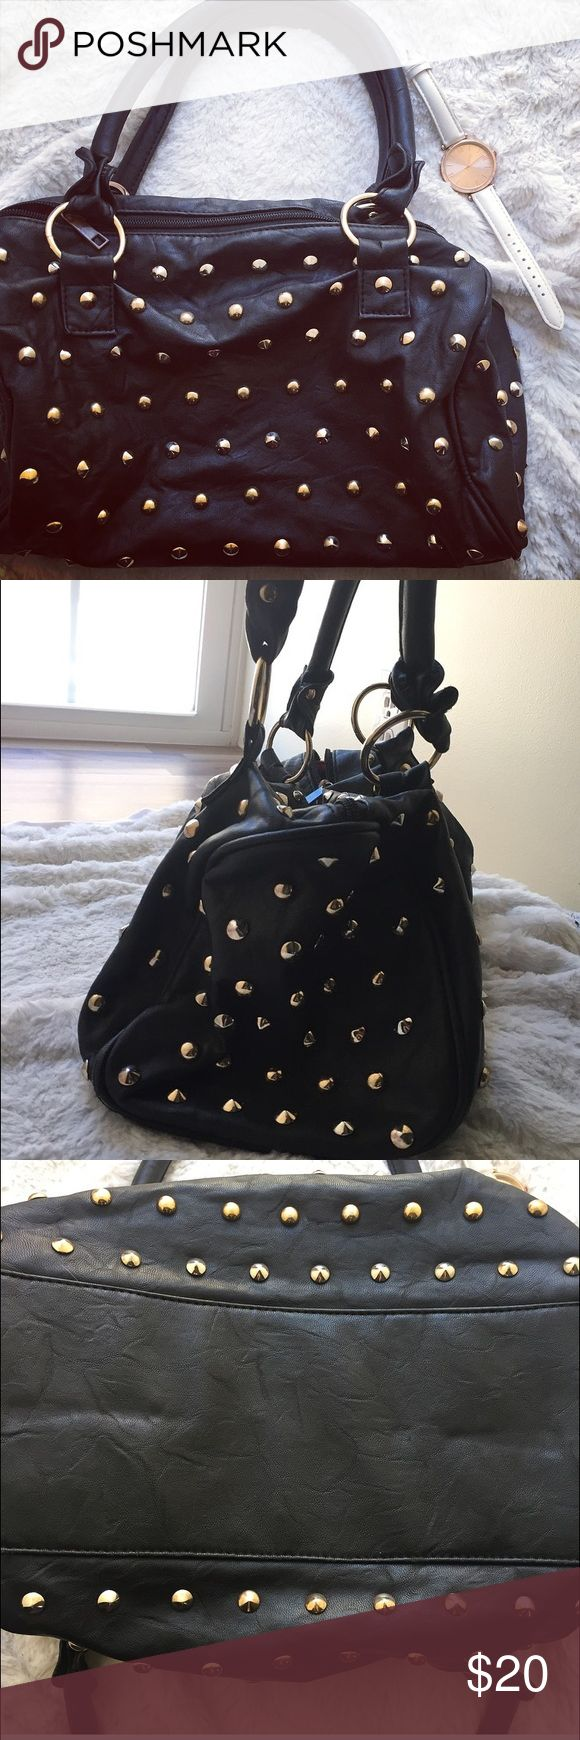 Large Studded Bag. Preloved, but only can tell by the